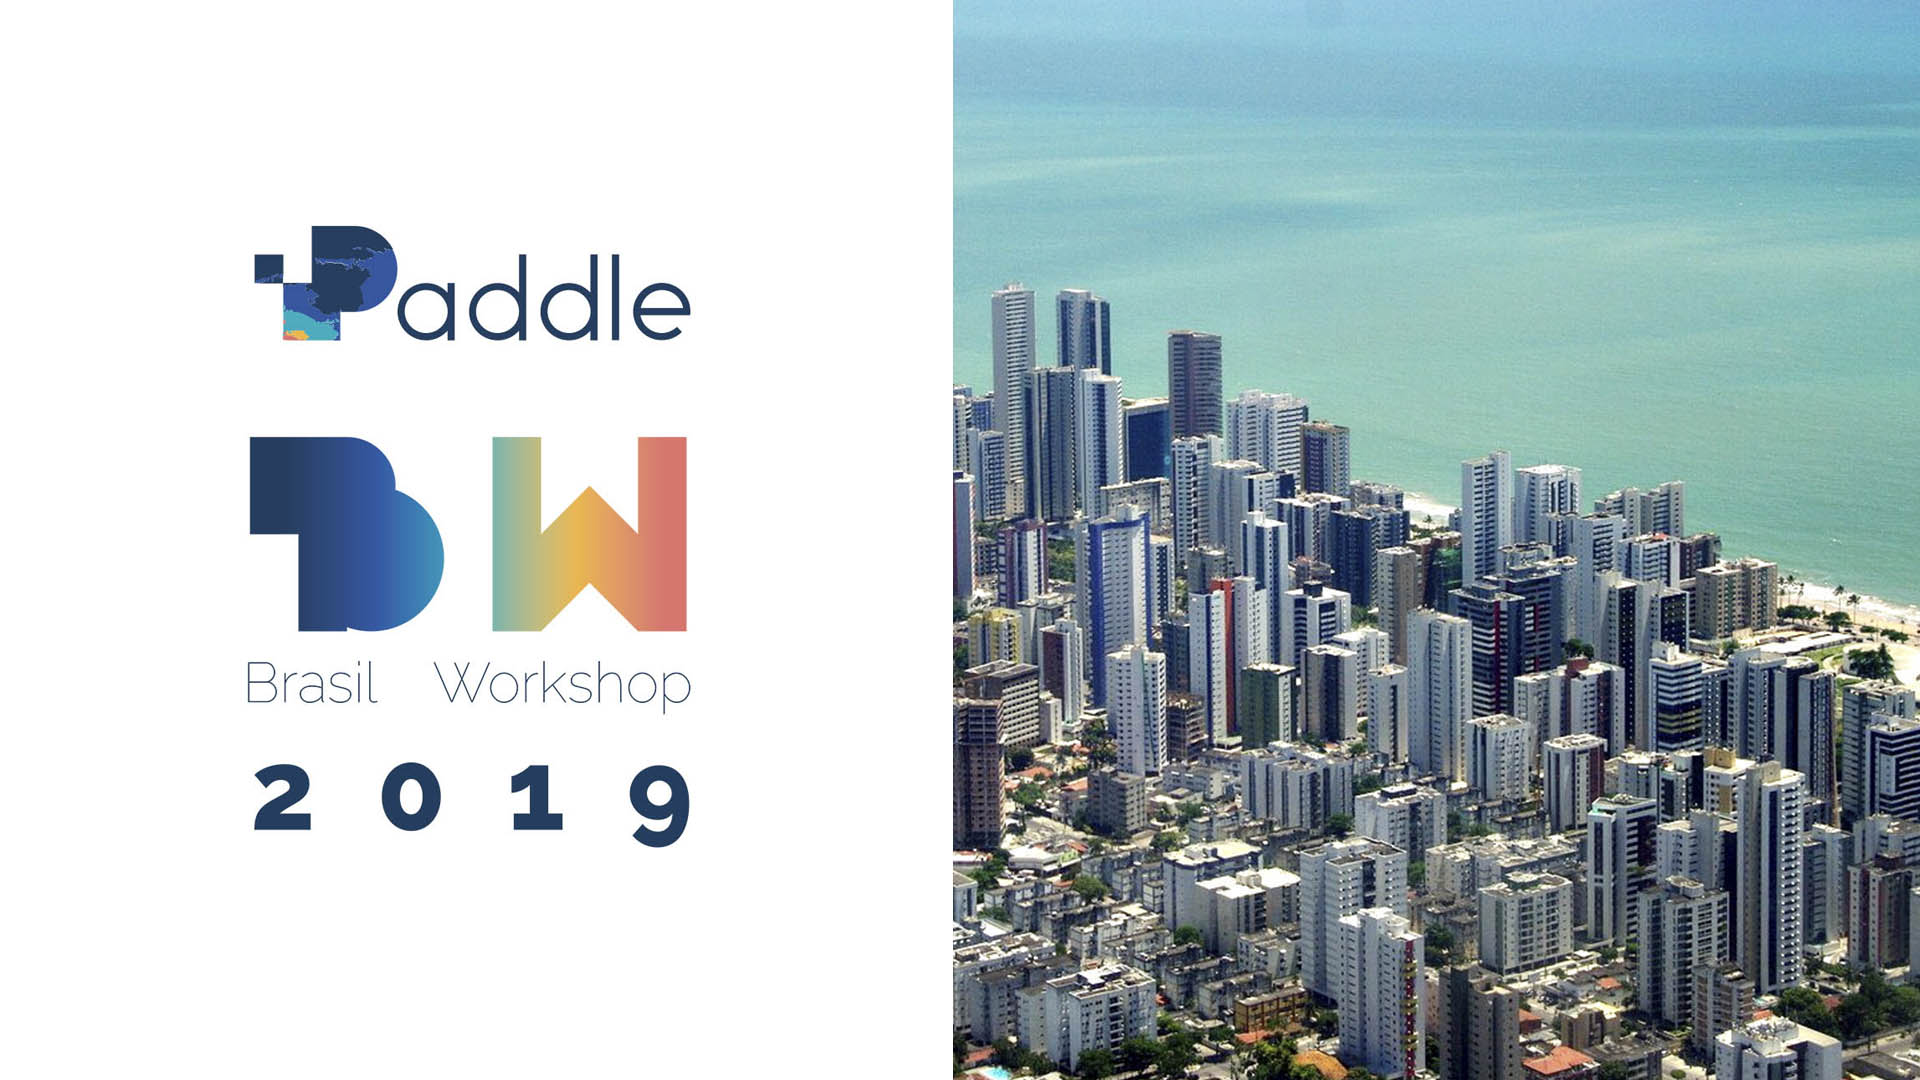 2019 Paddle brazilian workshop in Recife